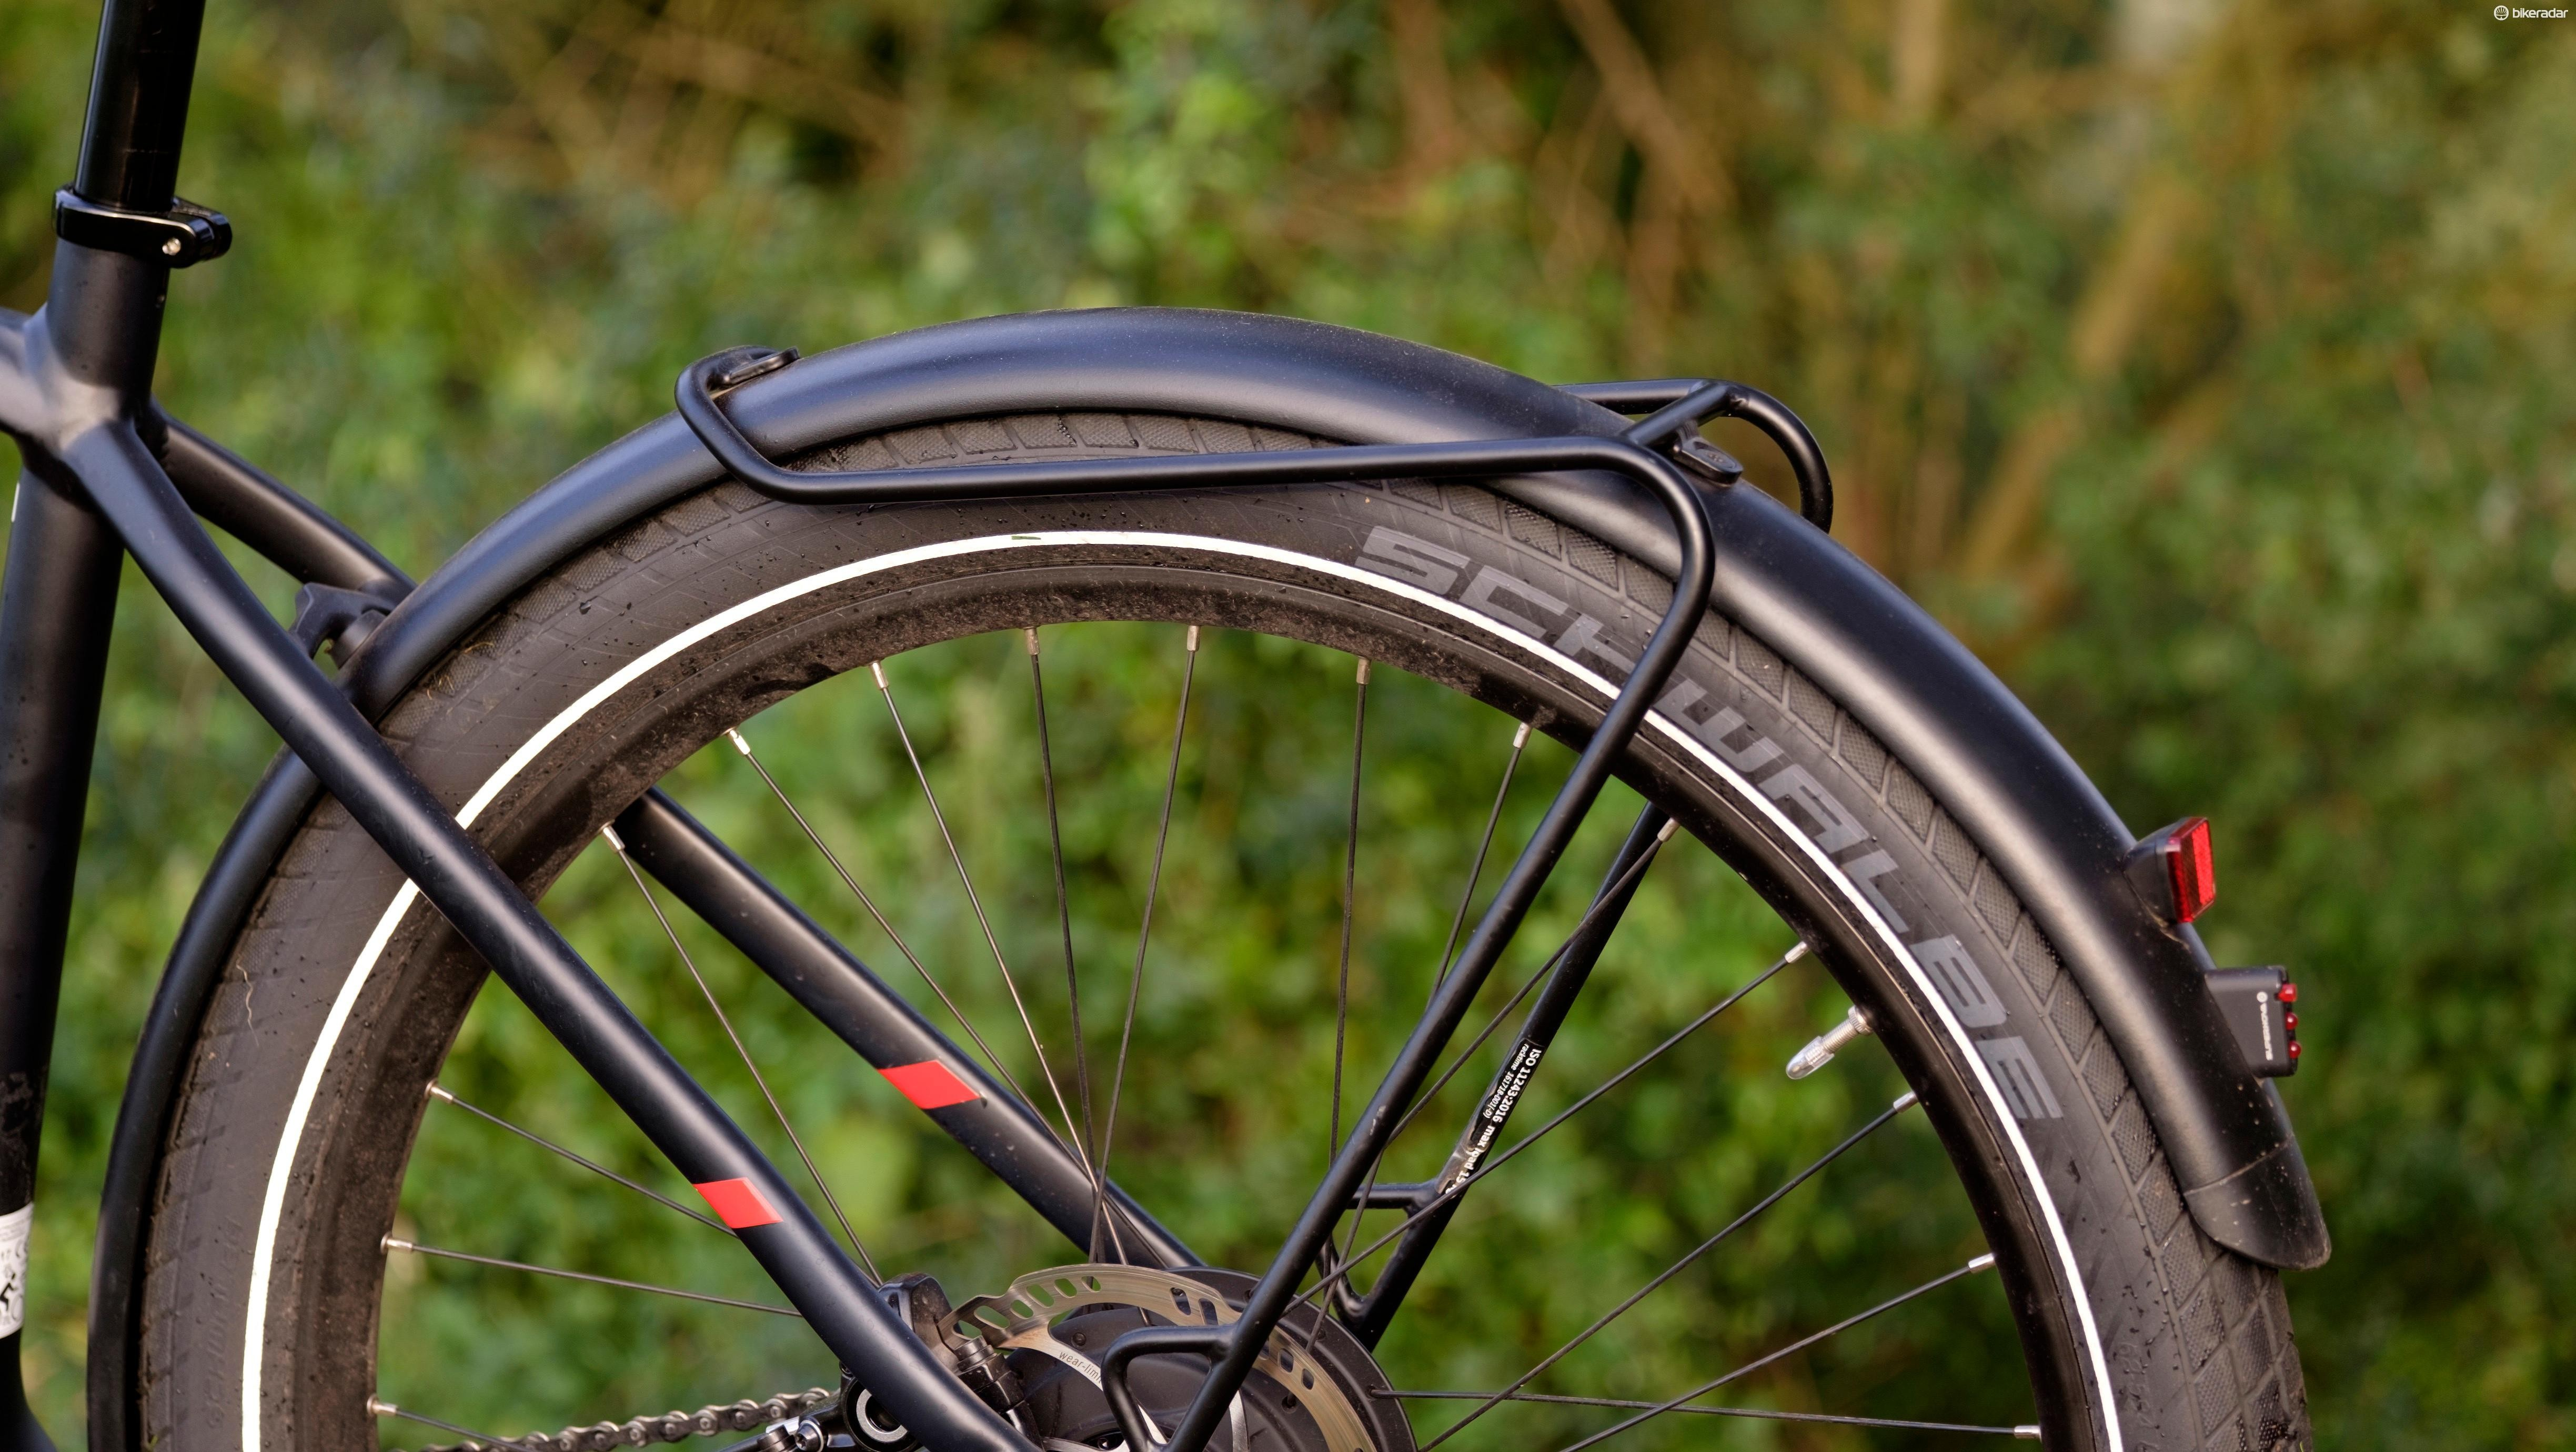 The Quality Tubus rack and mudguard combo is a real highlight